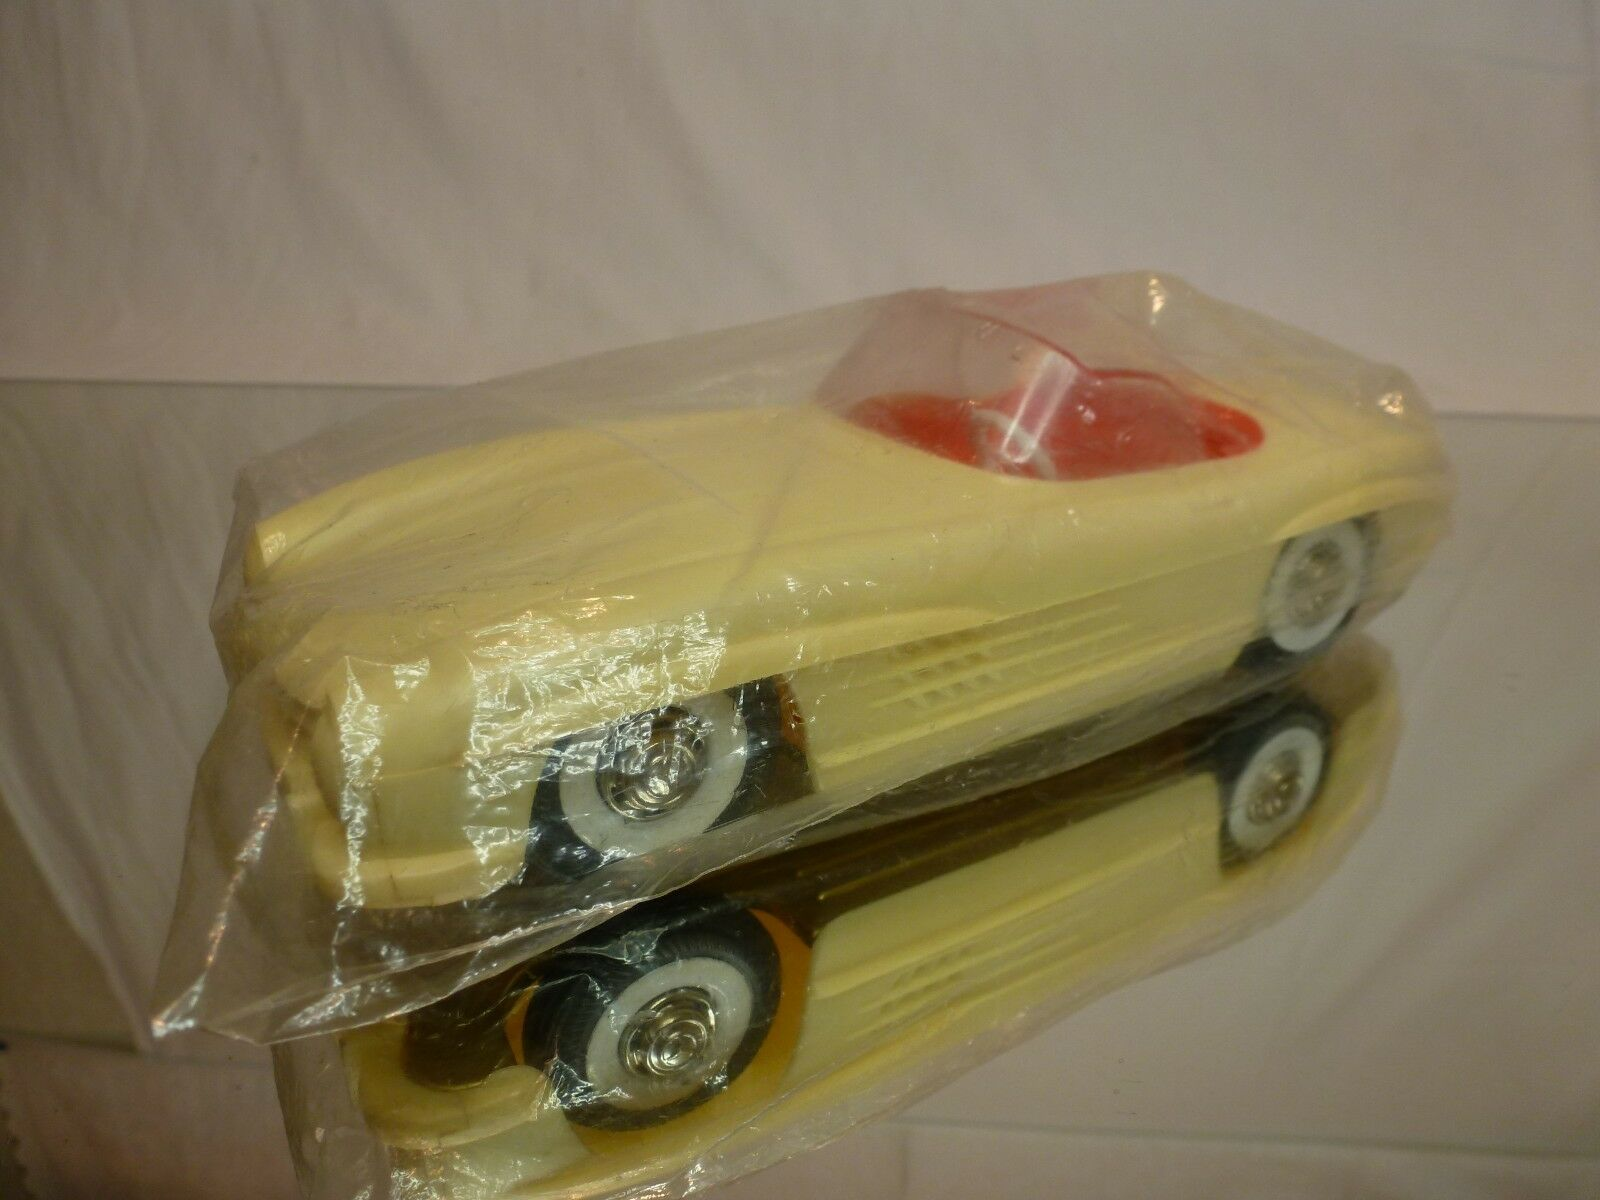 MADE IN WESTERN GERMANY MERCEDES BENZ 300 300 300 SL - L20.0cm FRICTION - UNUSED IN BAG bbace4